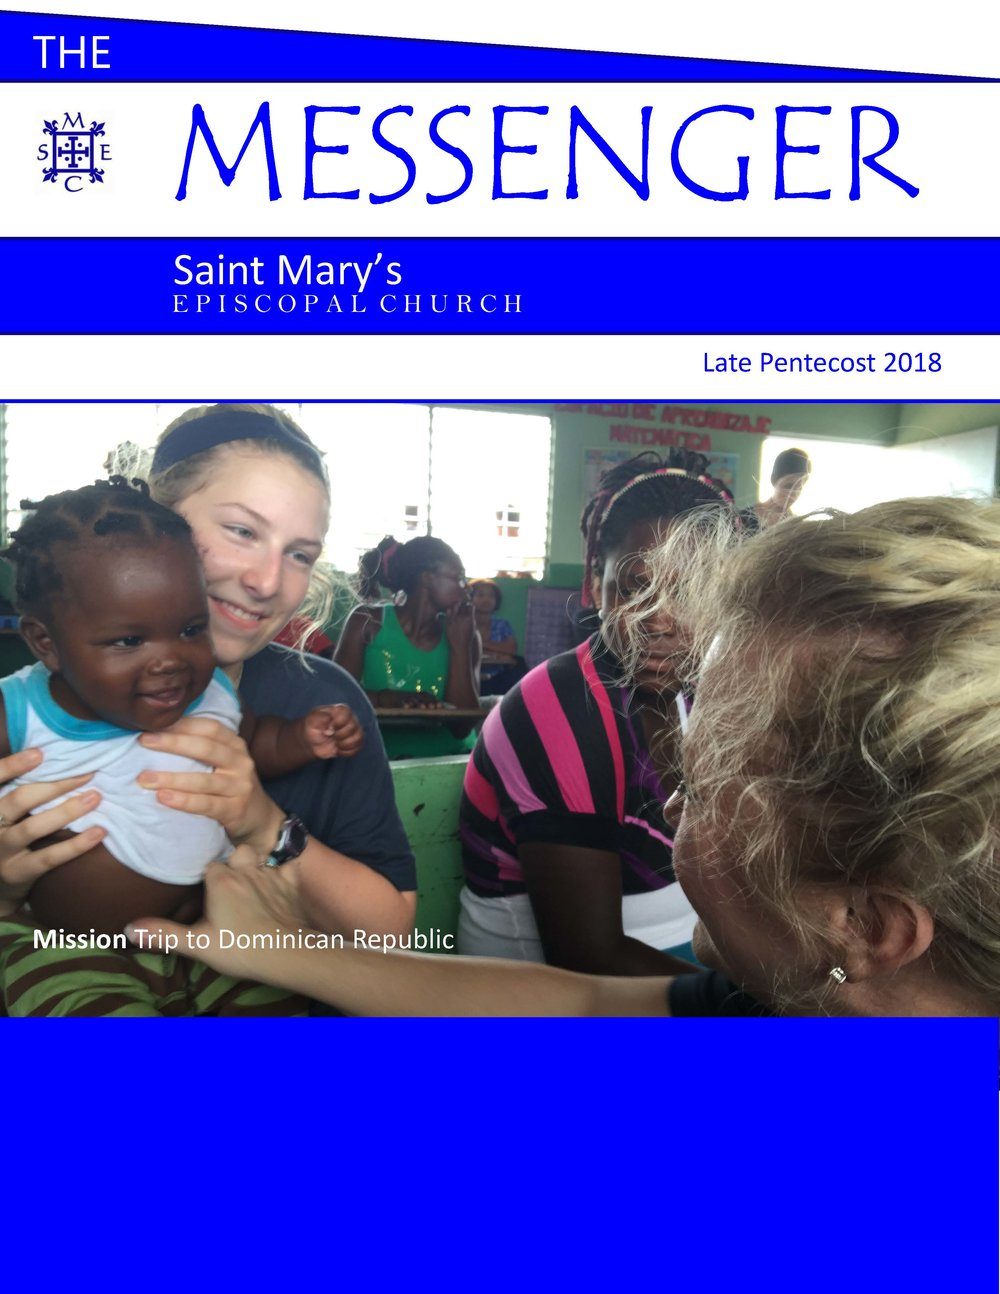 Messenger Late Pentecost 2018 Cover.jpg